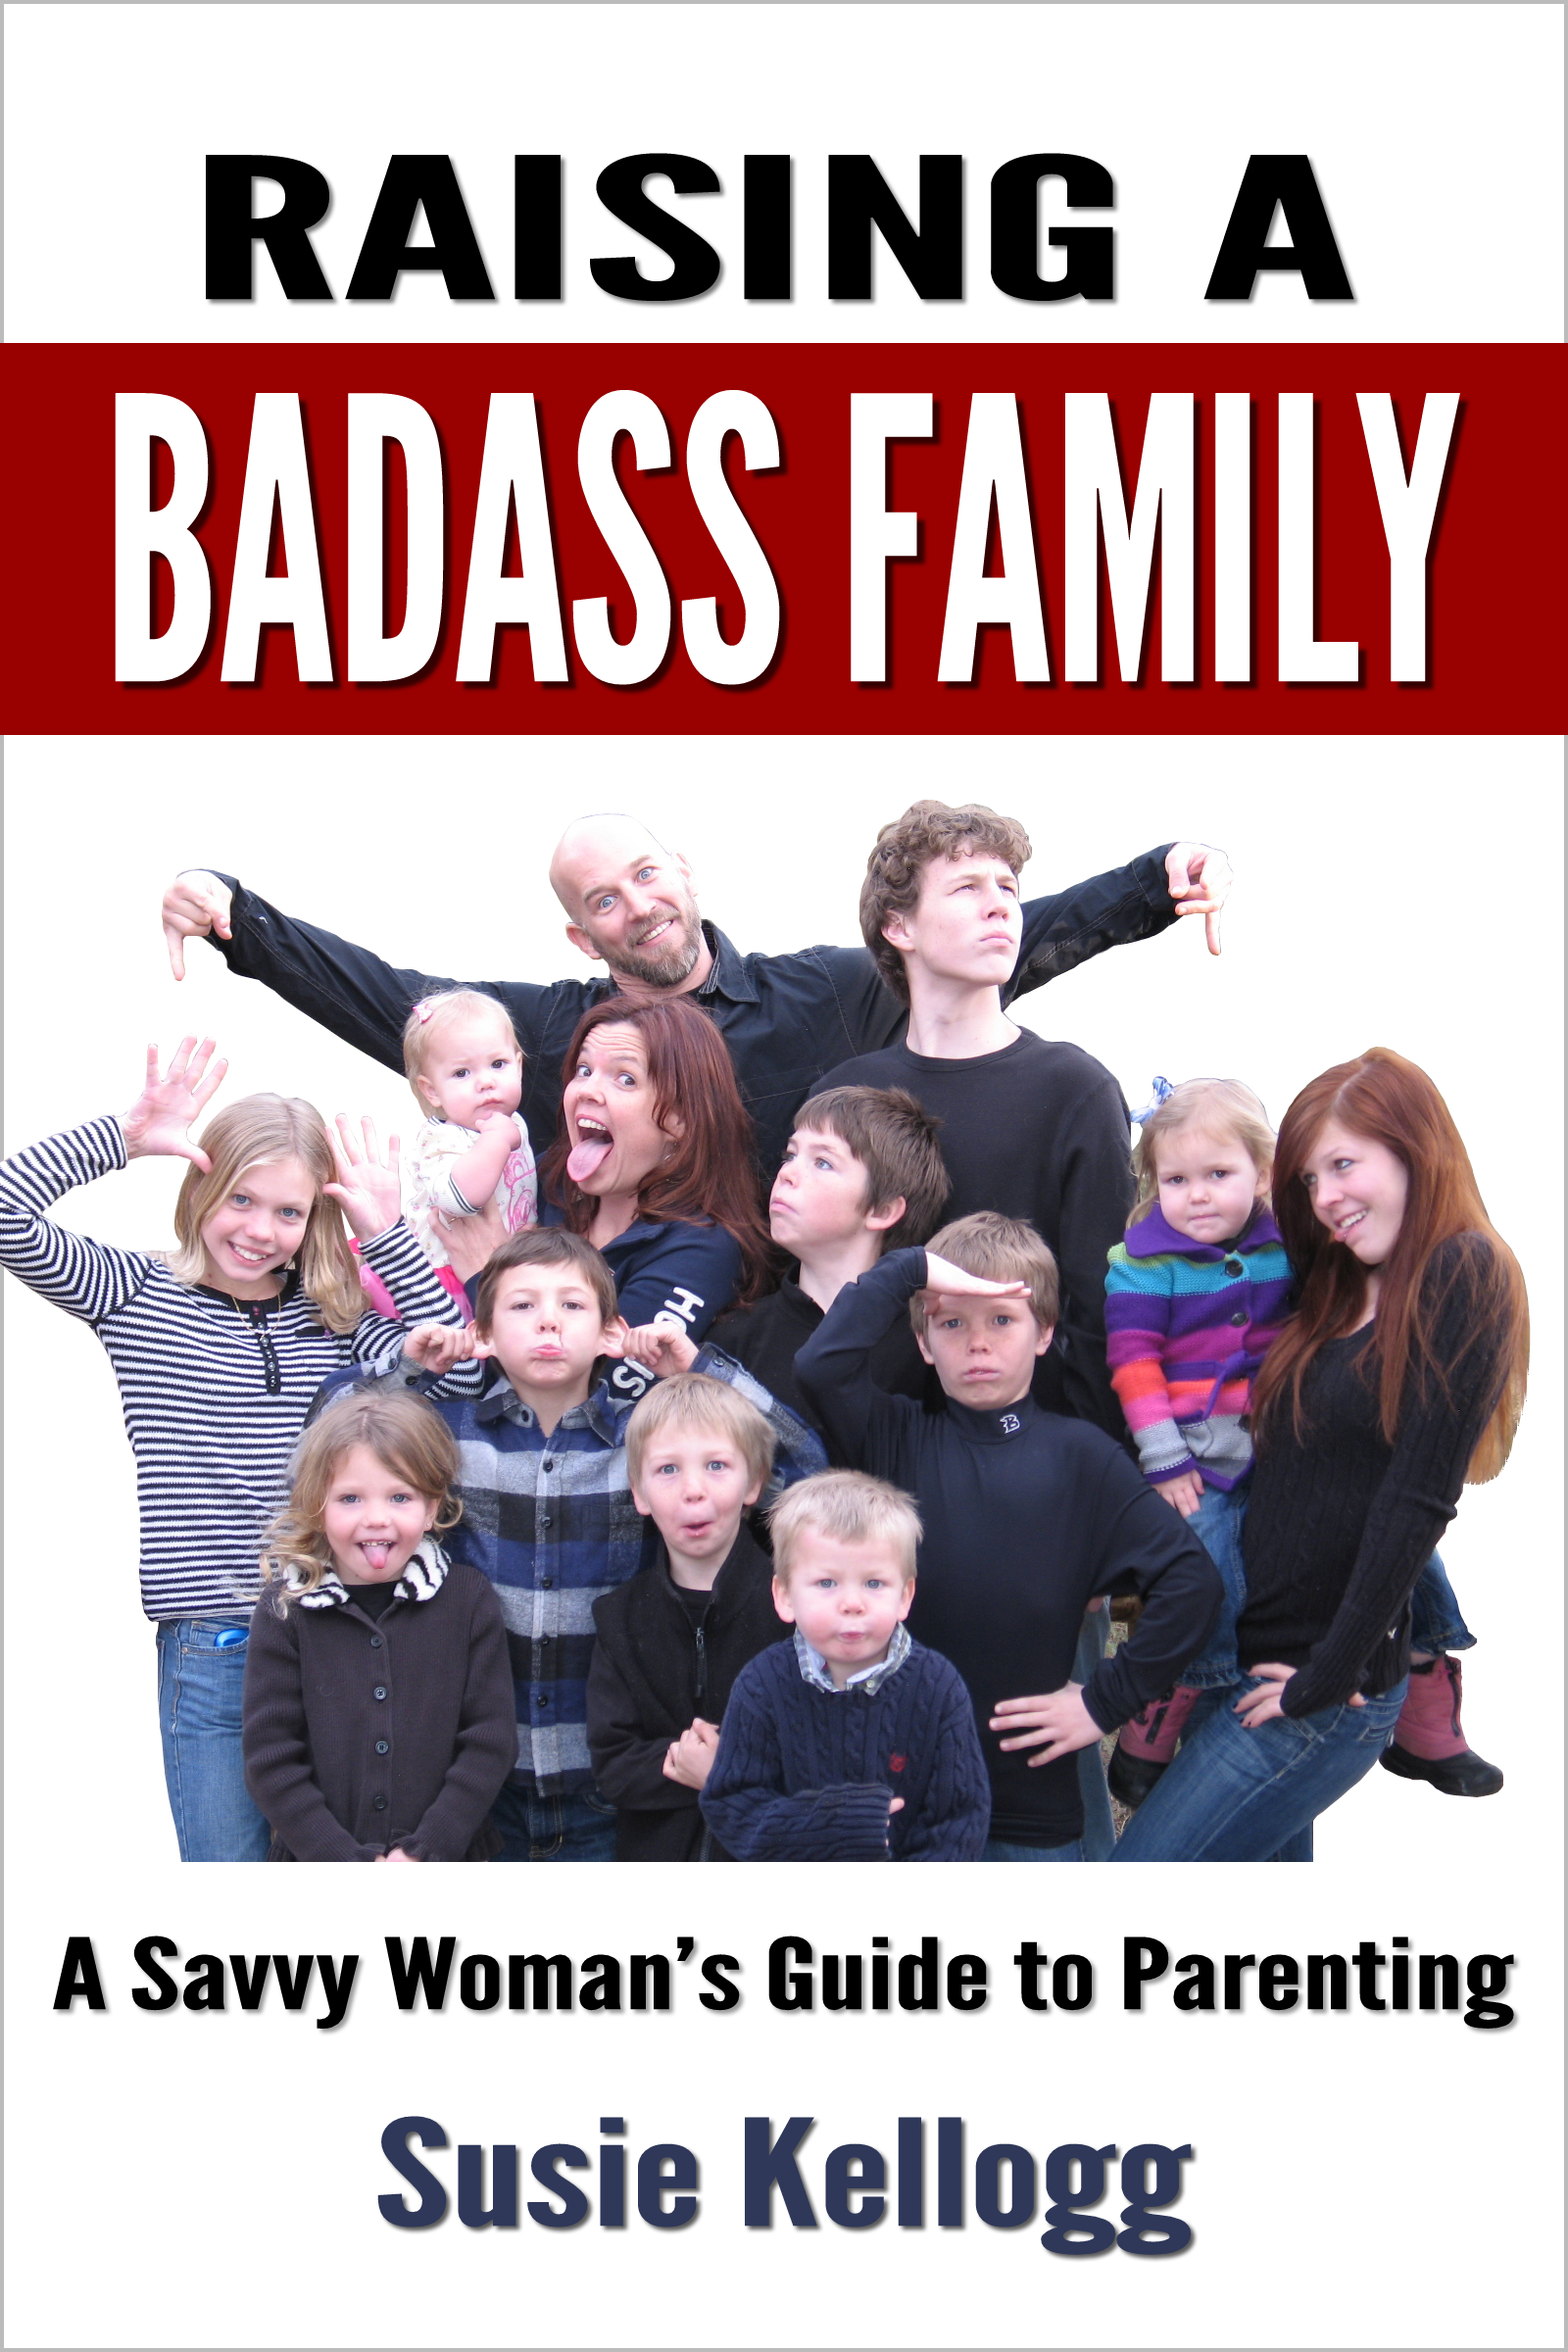 Raising a Badass Family